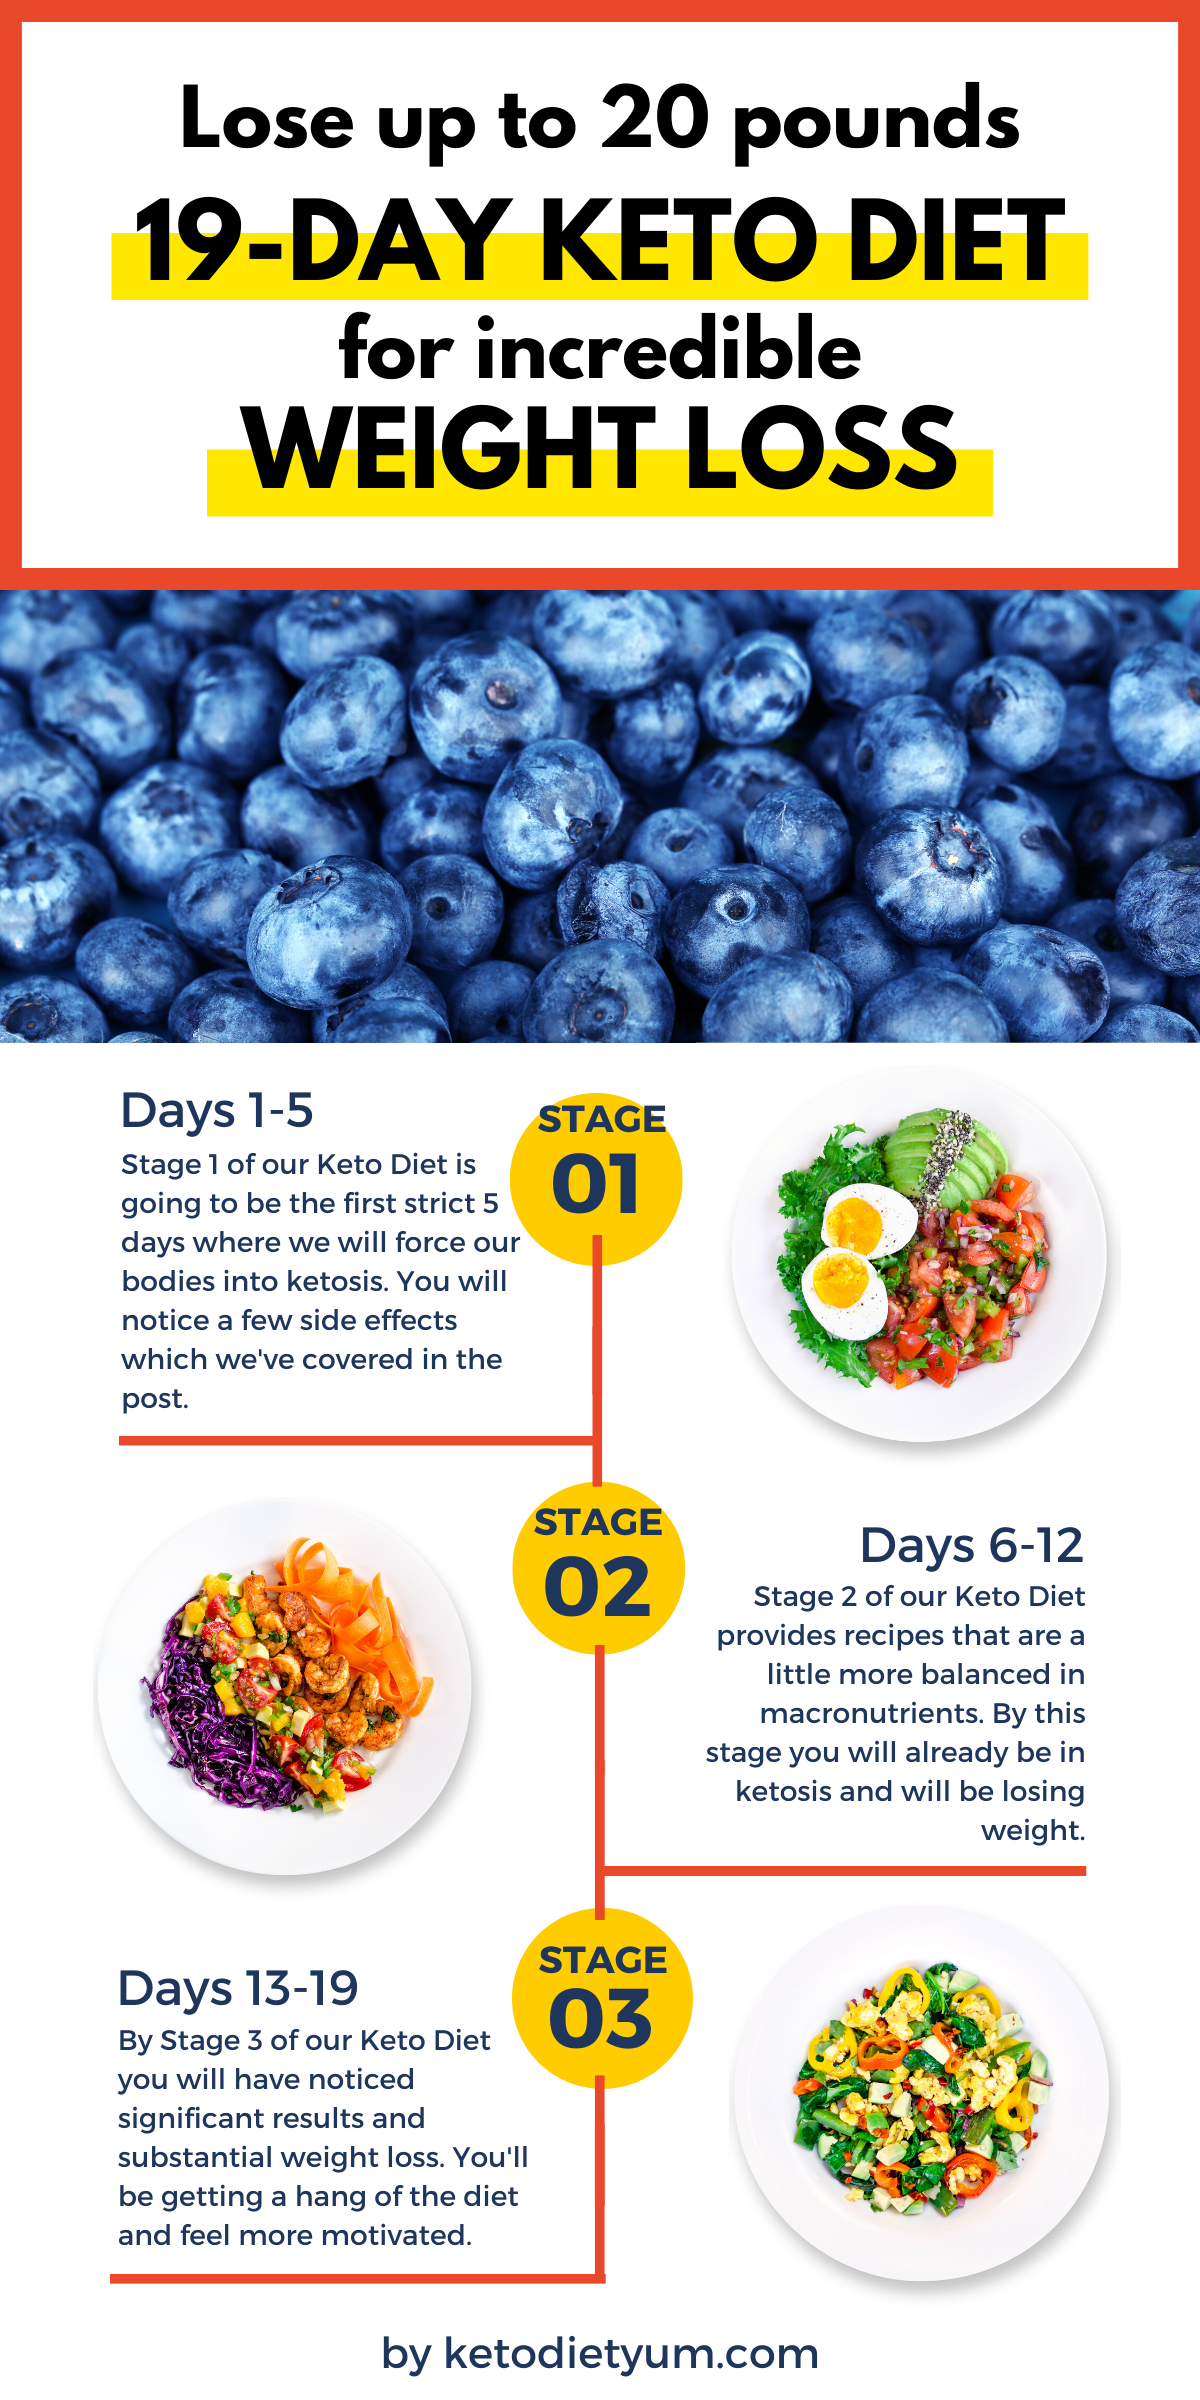 19-Day Keto Diet To Lose 20 Lbs In 3 Weeks. Simple Weight Loss Guide to Get Started With The Ketogenic Diet Plan. #ketodiet #loseweight #ketogenicdiet